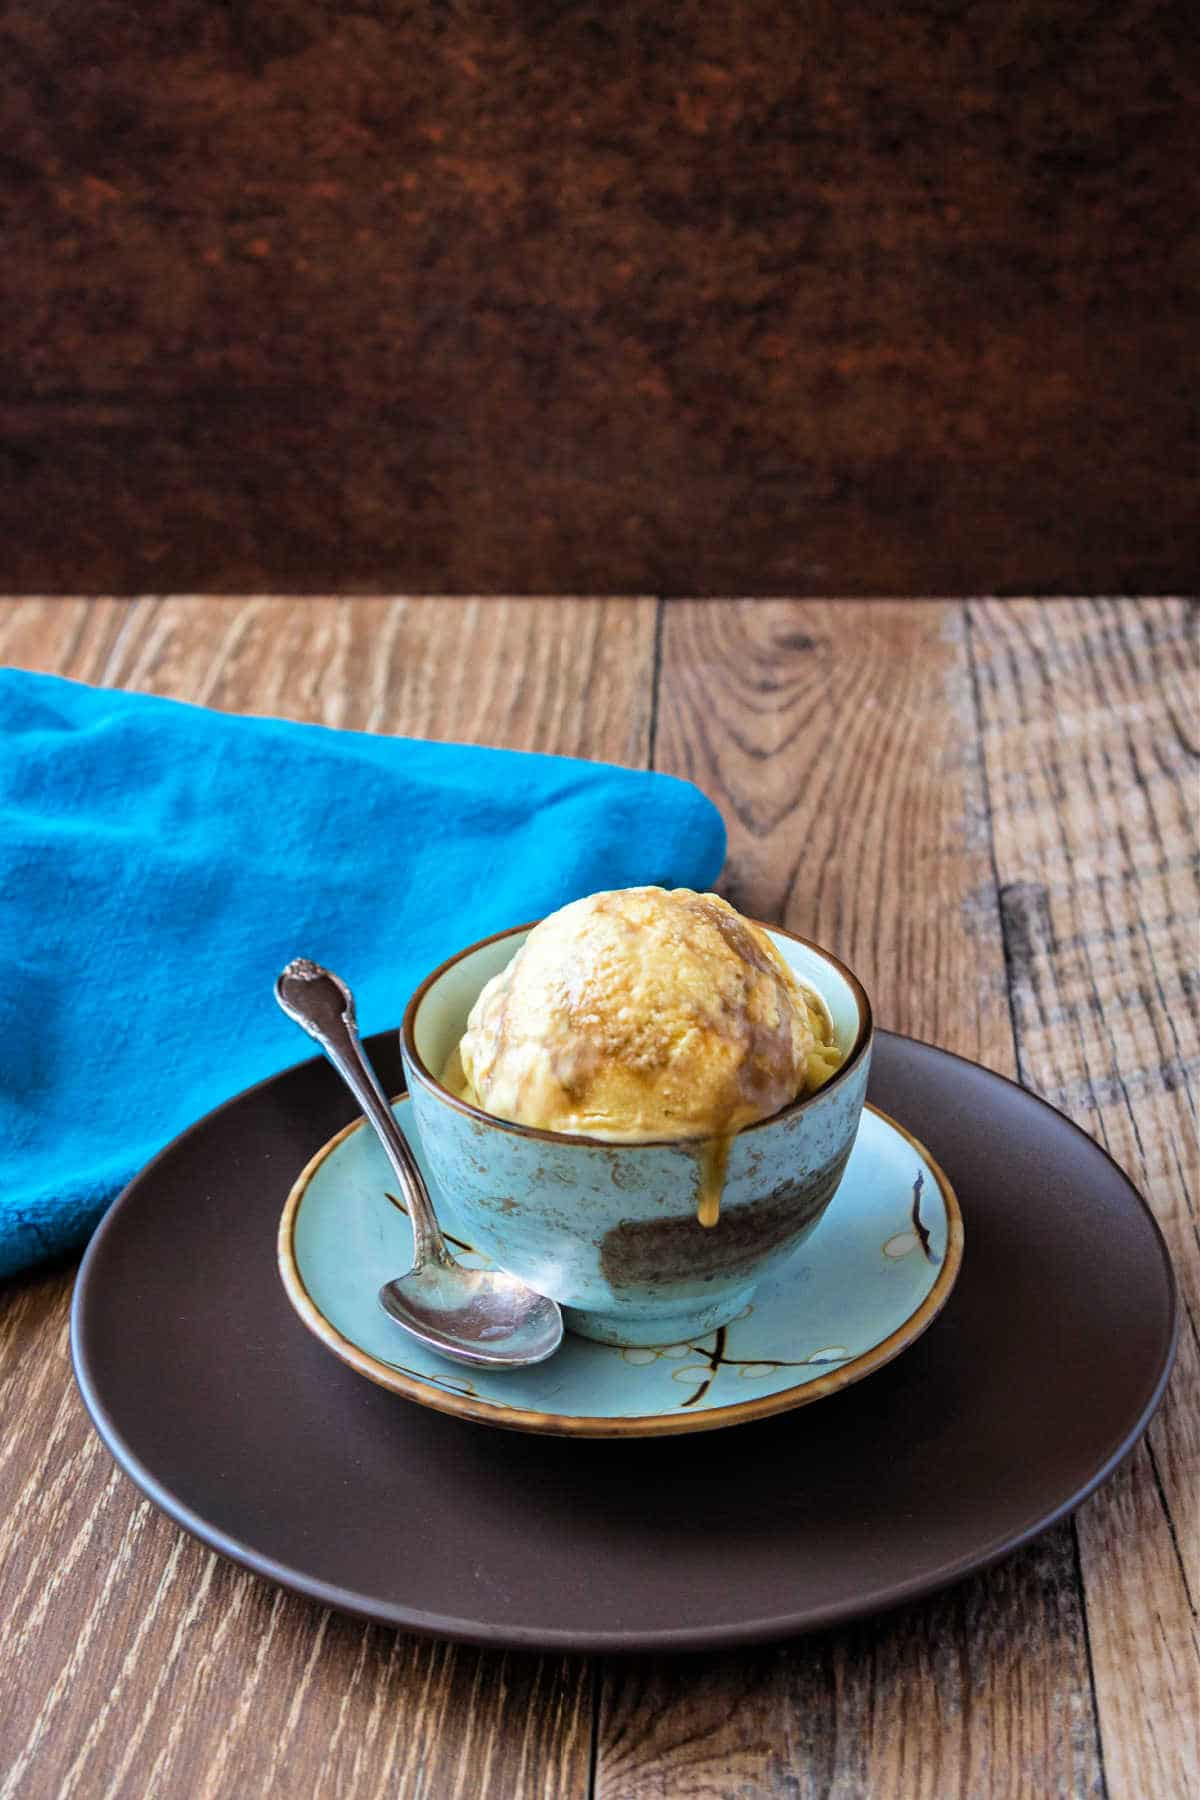 A blue bowl of butterscotch ripple ice cream on a wooden background.